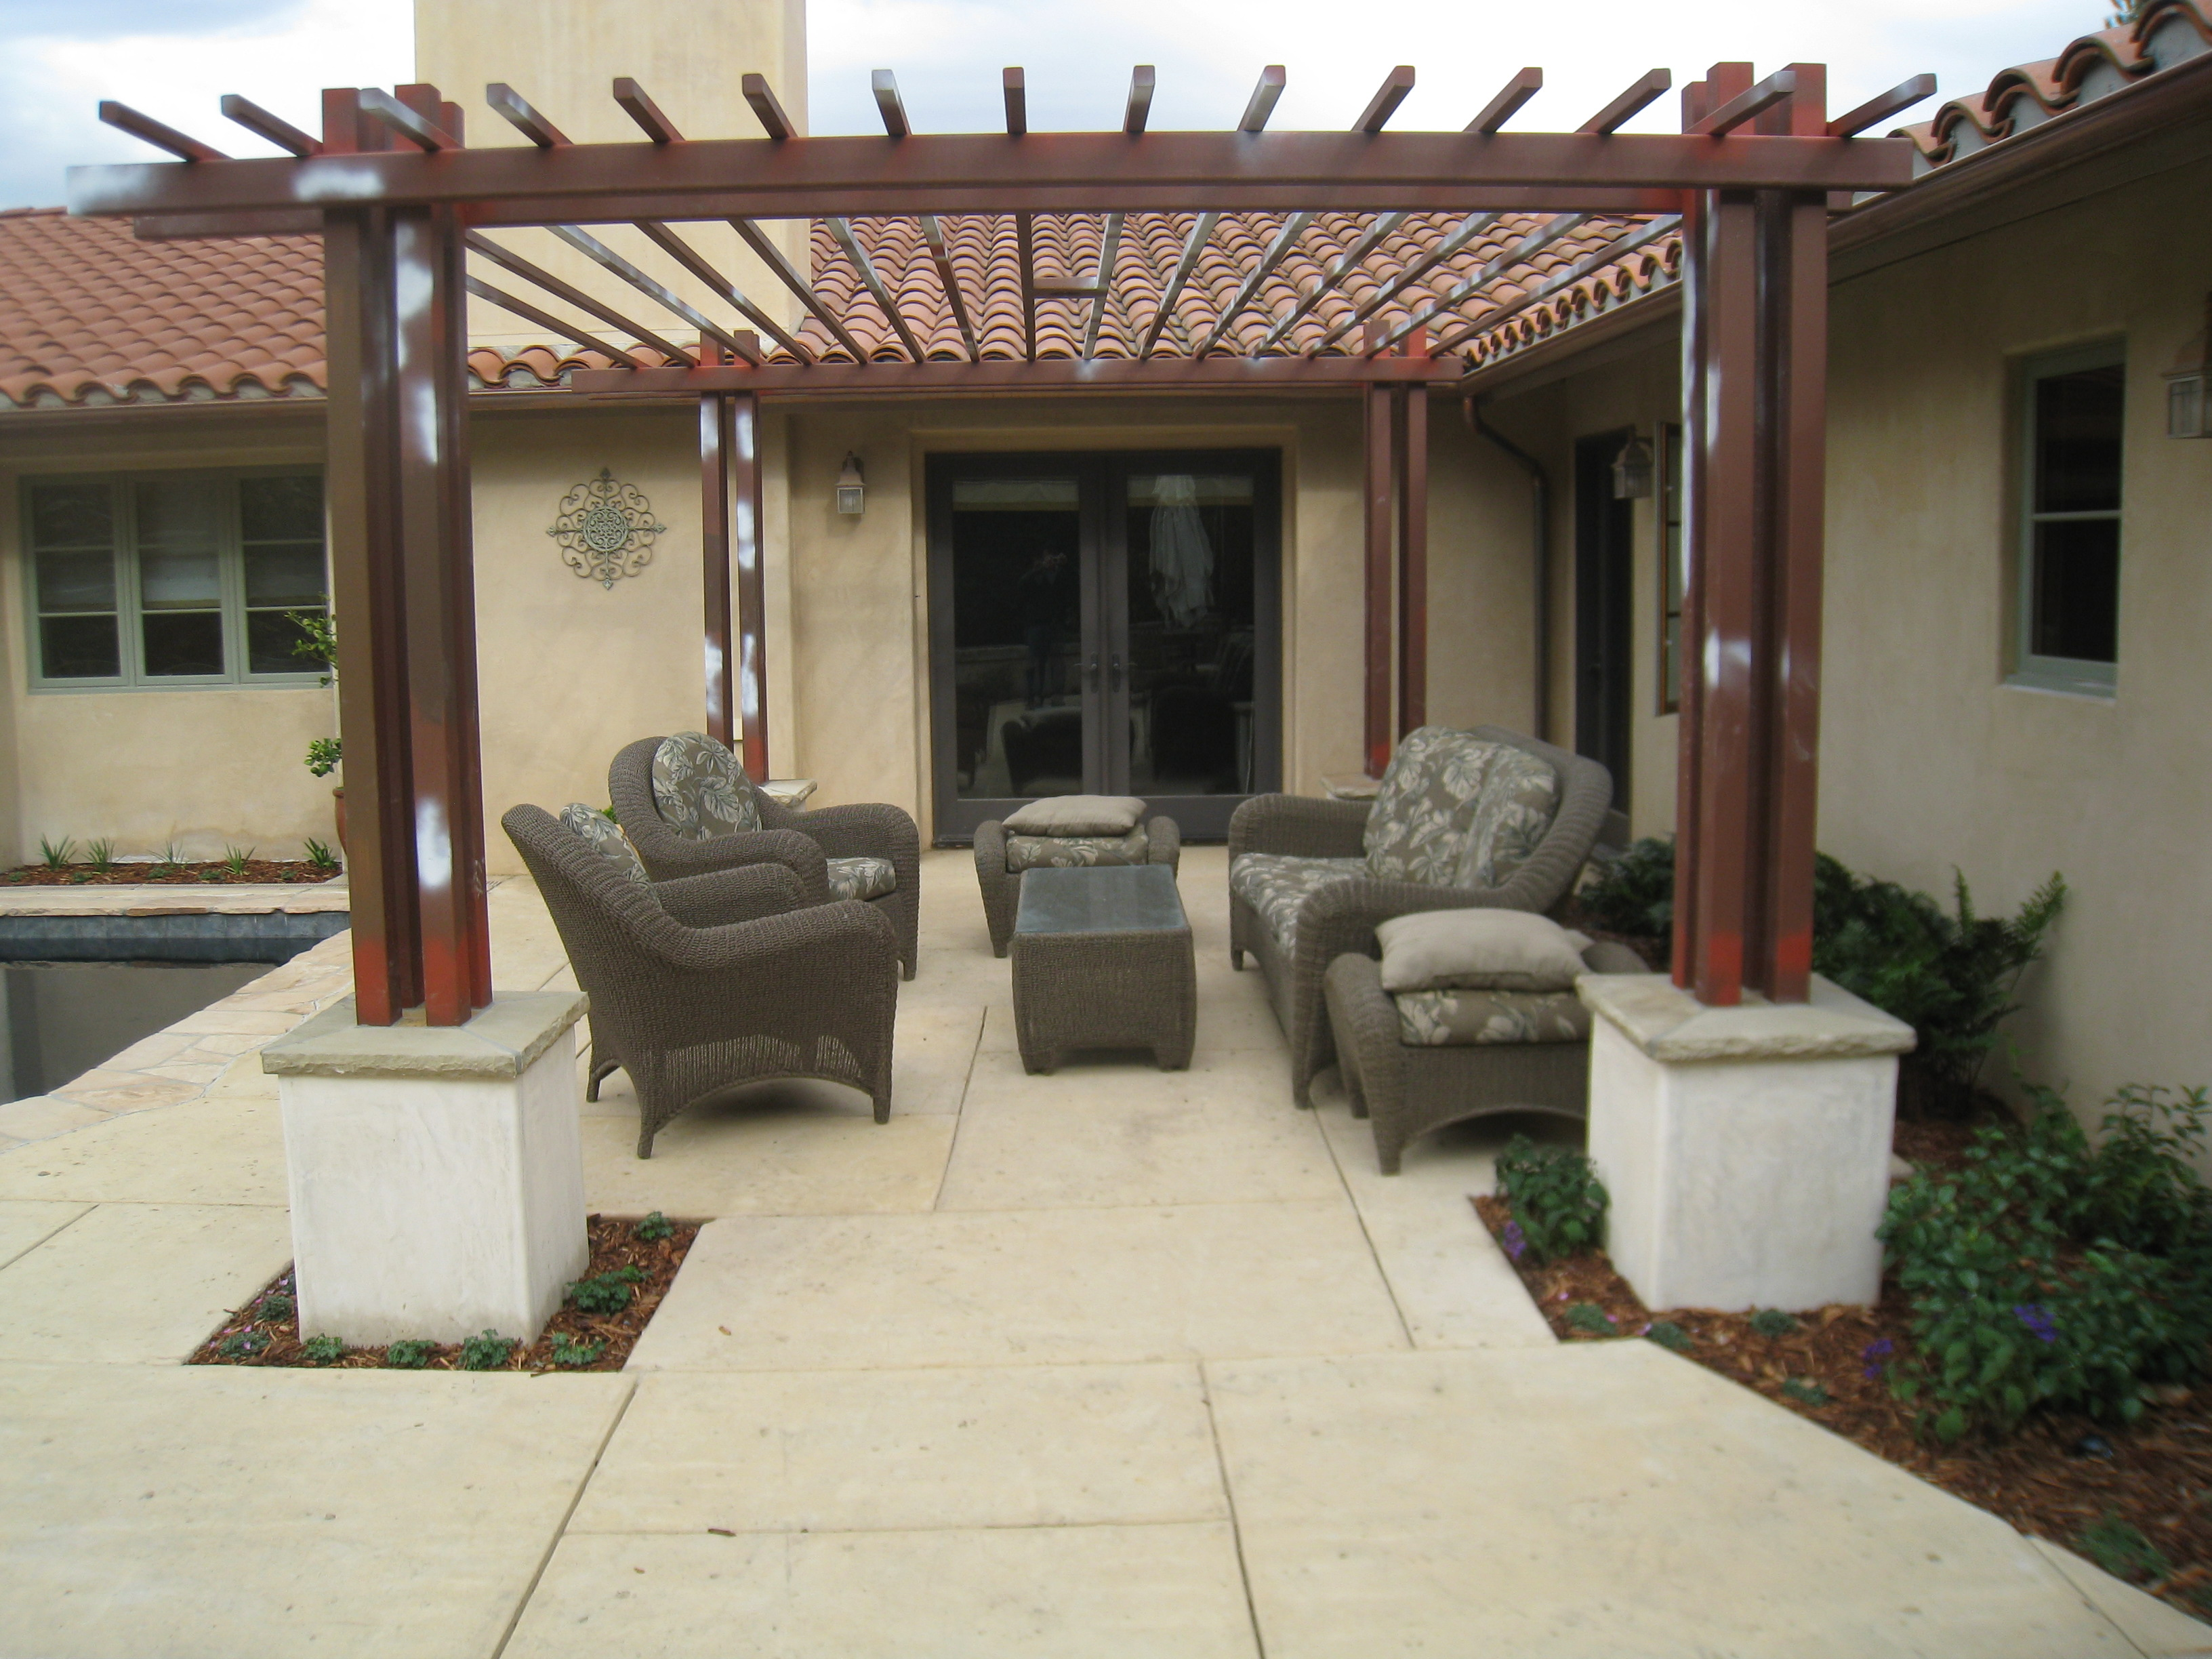 Custom trellis to match pergola landscapes by earth design - Backyard Dining Area And Custom Pergola In Santa Barbara